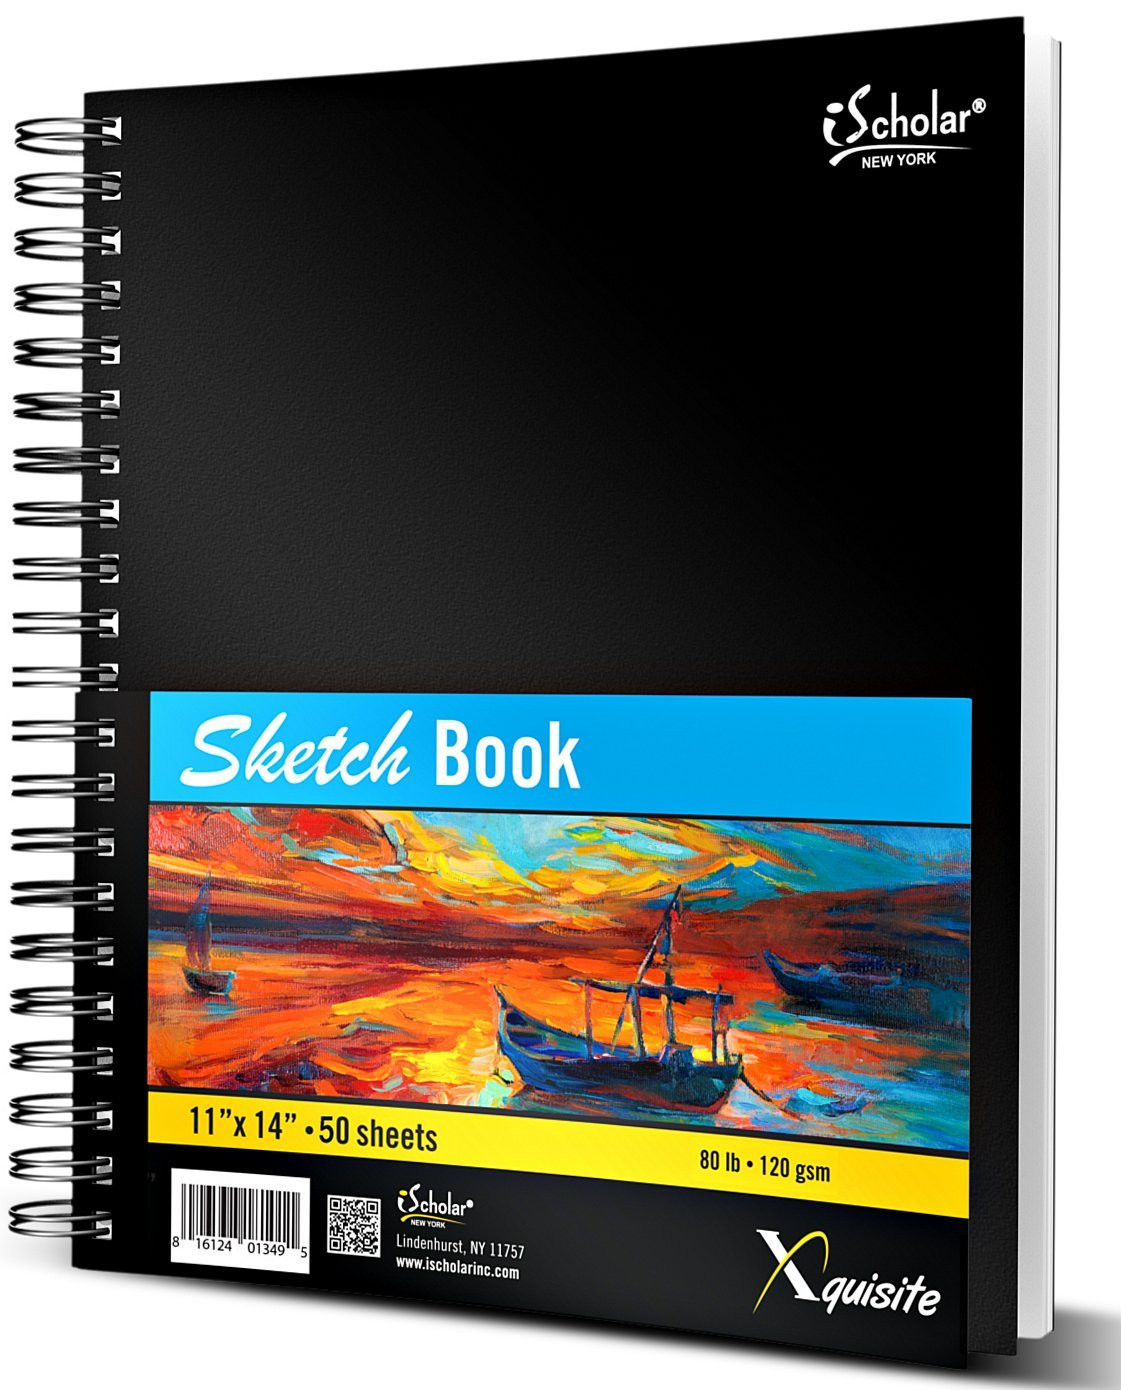 iScholar Xquisite Sketch Book, Double Wirebound, 50 Sheets, Black, 11 x 14 Inches (41114)